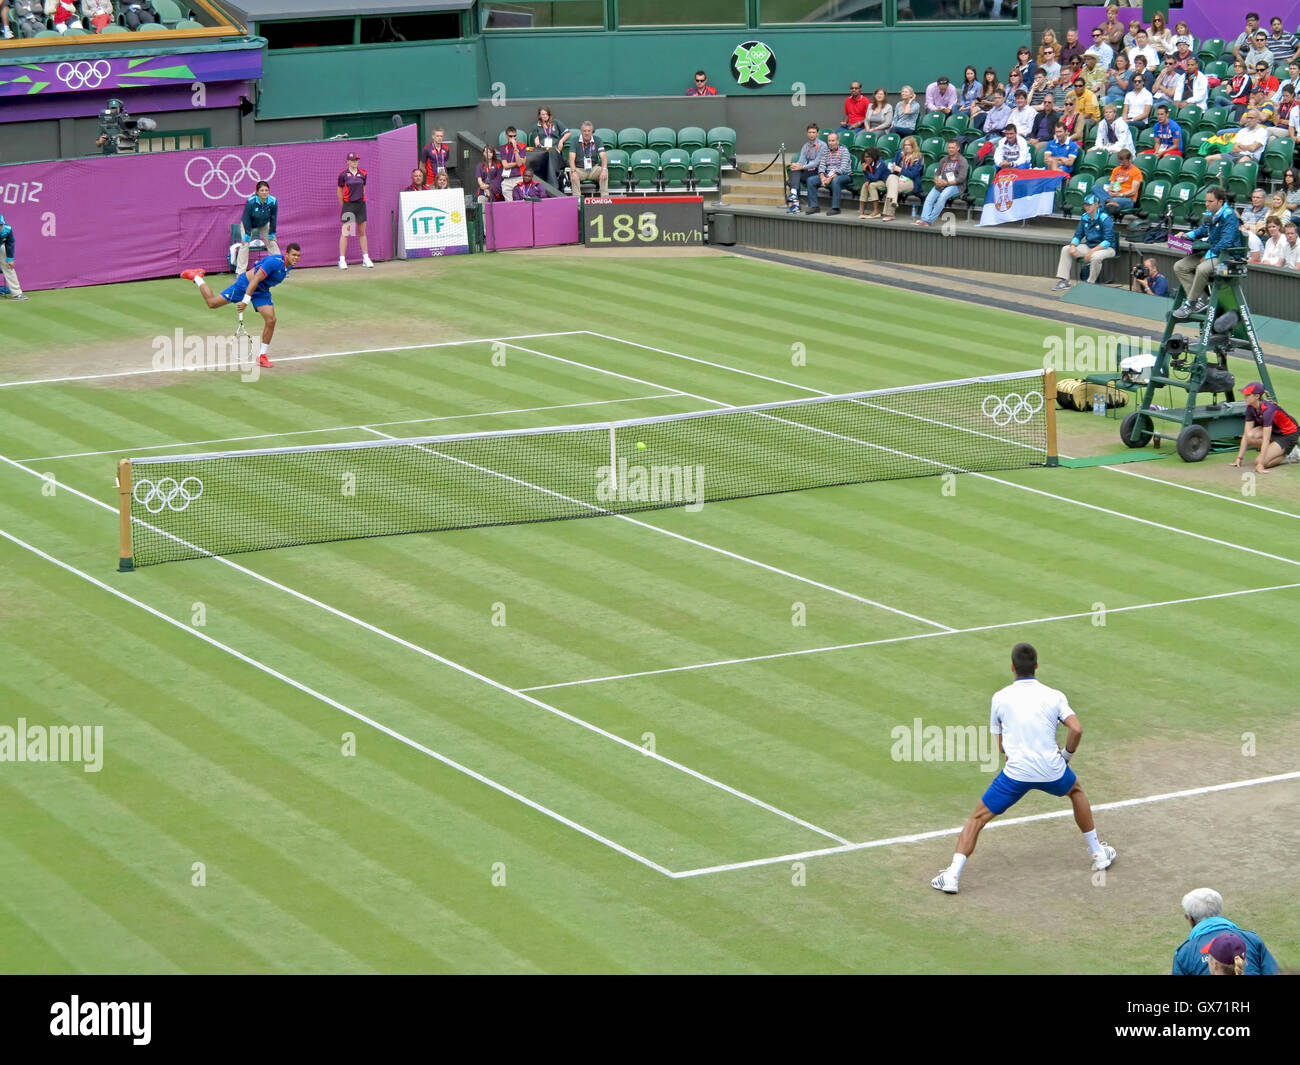 Wimbledon, England. August 2nd, 2012. Novak Djokovic and Jo-Wilfried Tsonga during their singles match at the summer - Stock Image